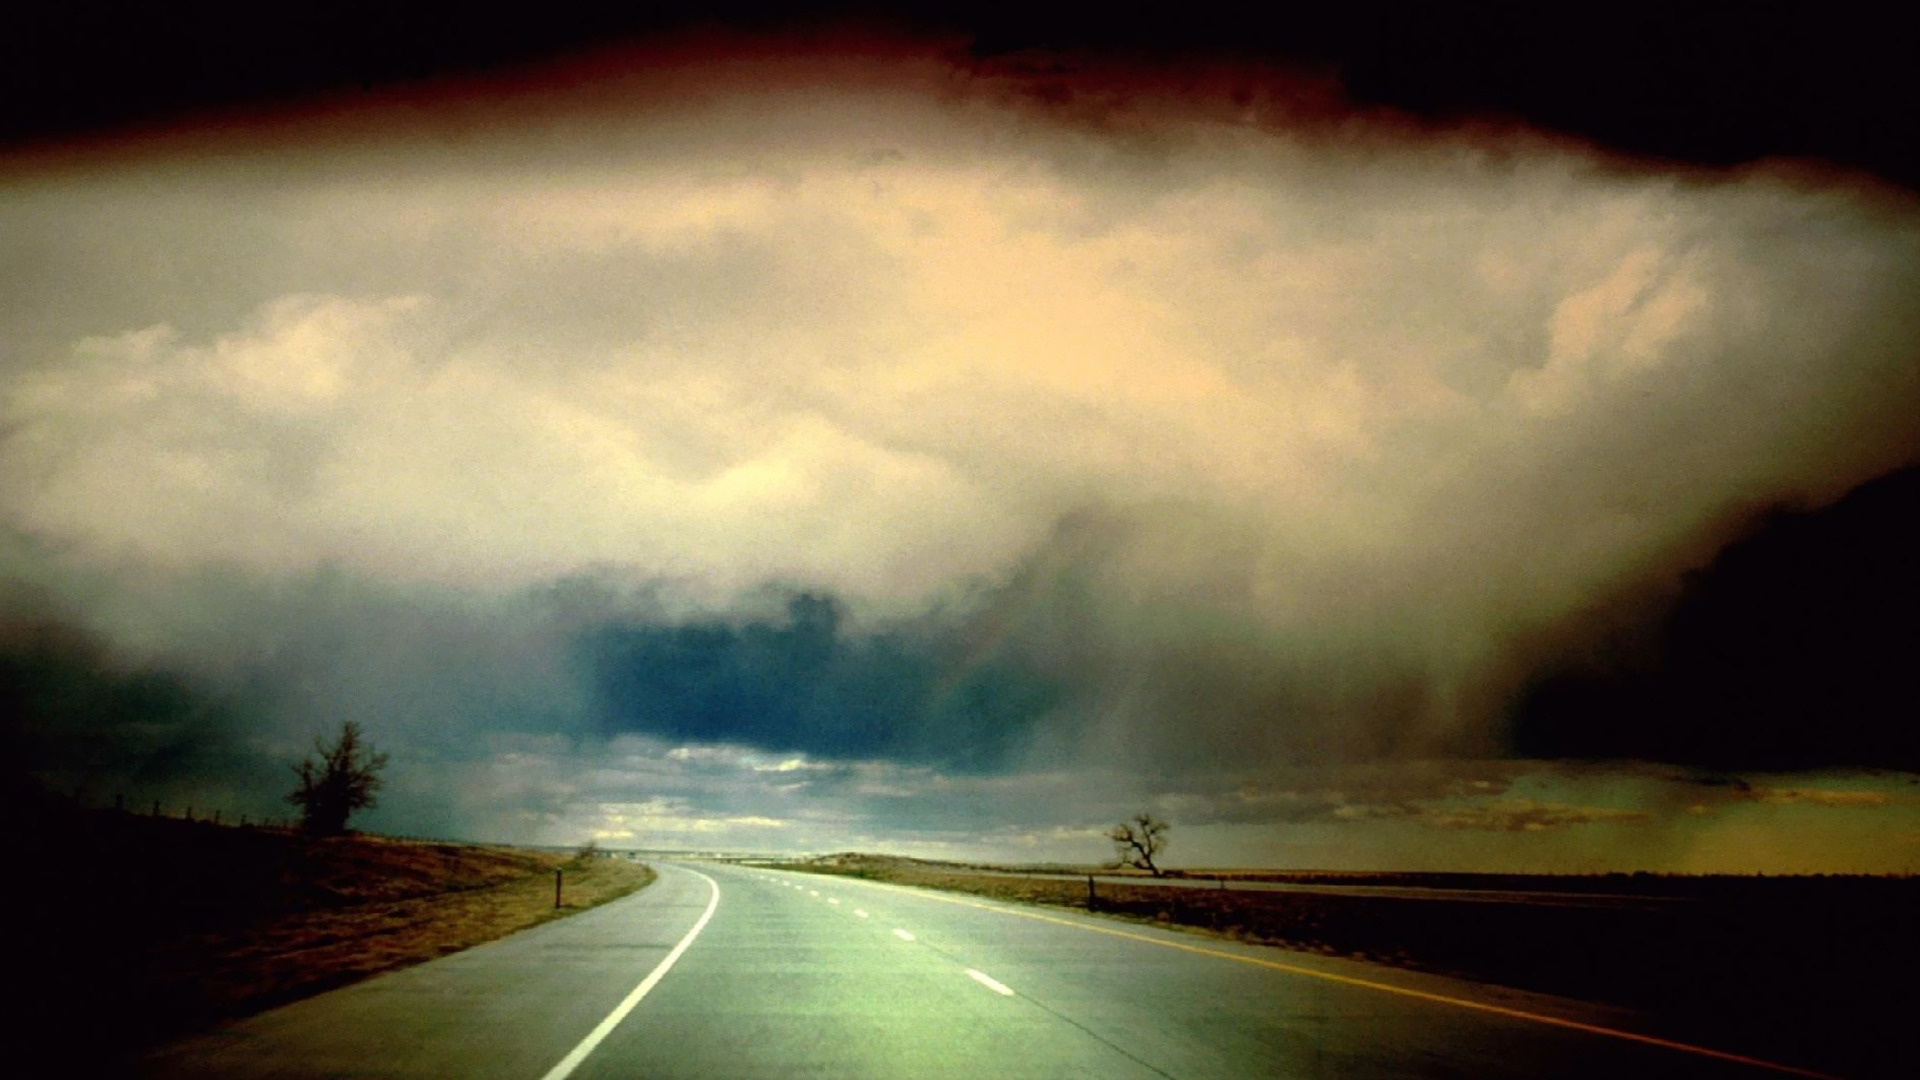 Storm clouds over empty road